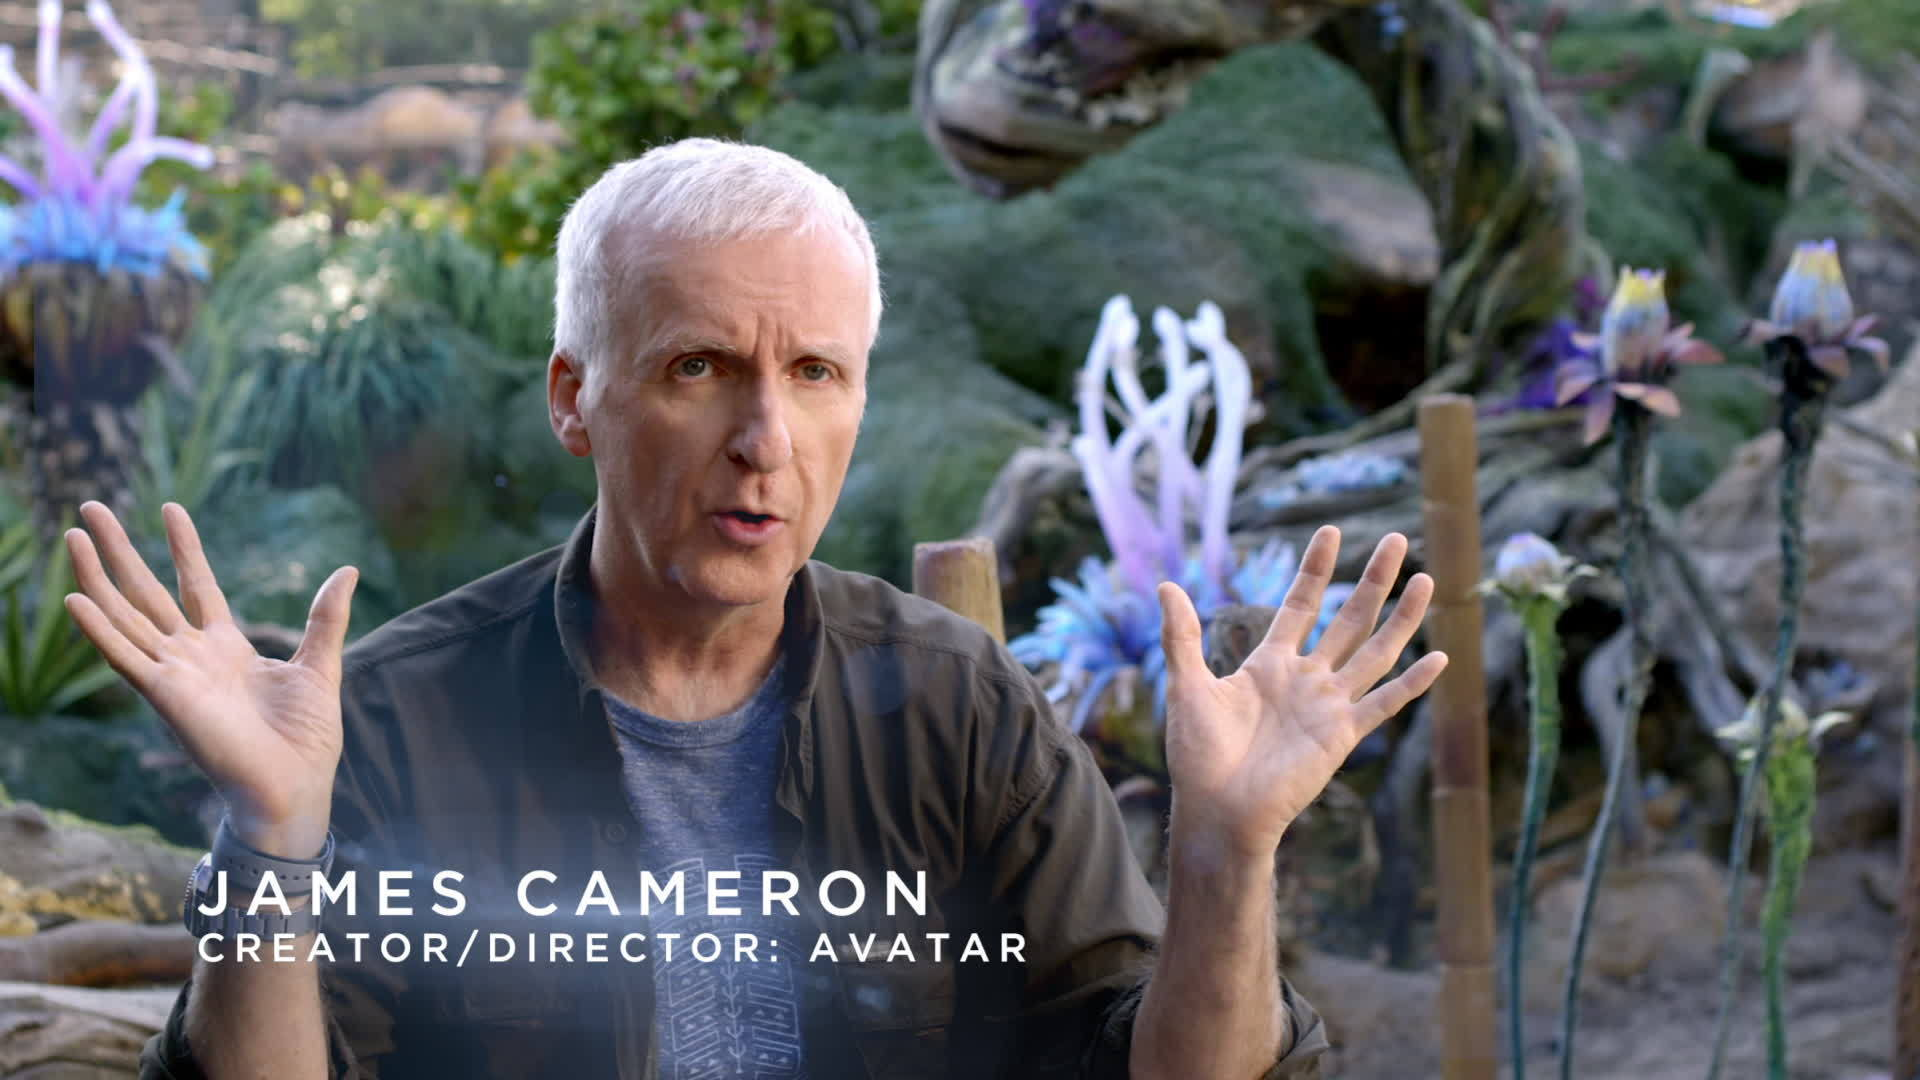 AVATAR Creator/Director James Cameron